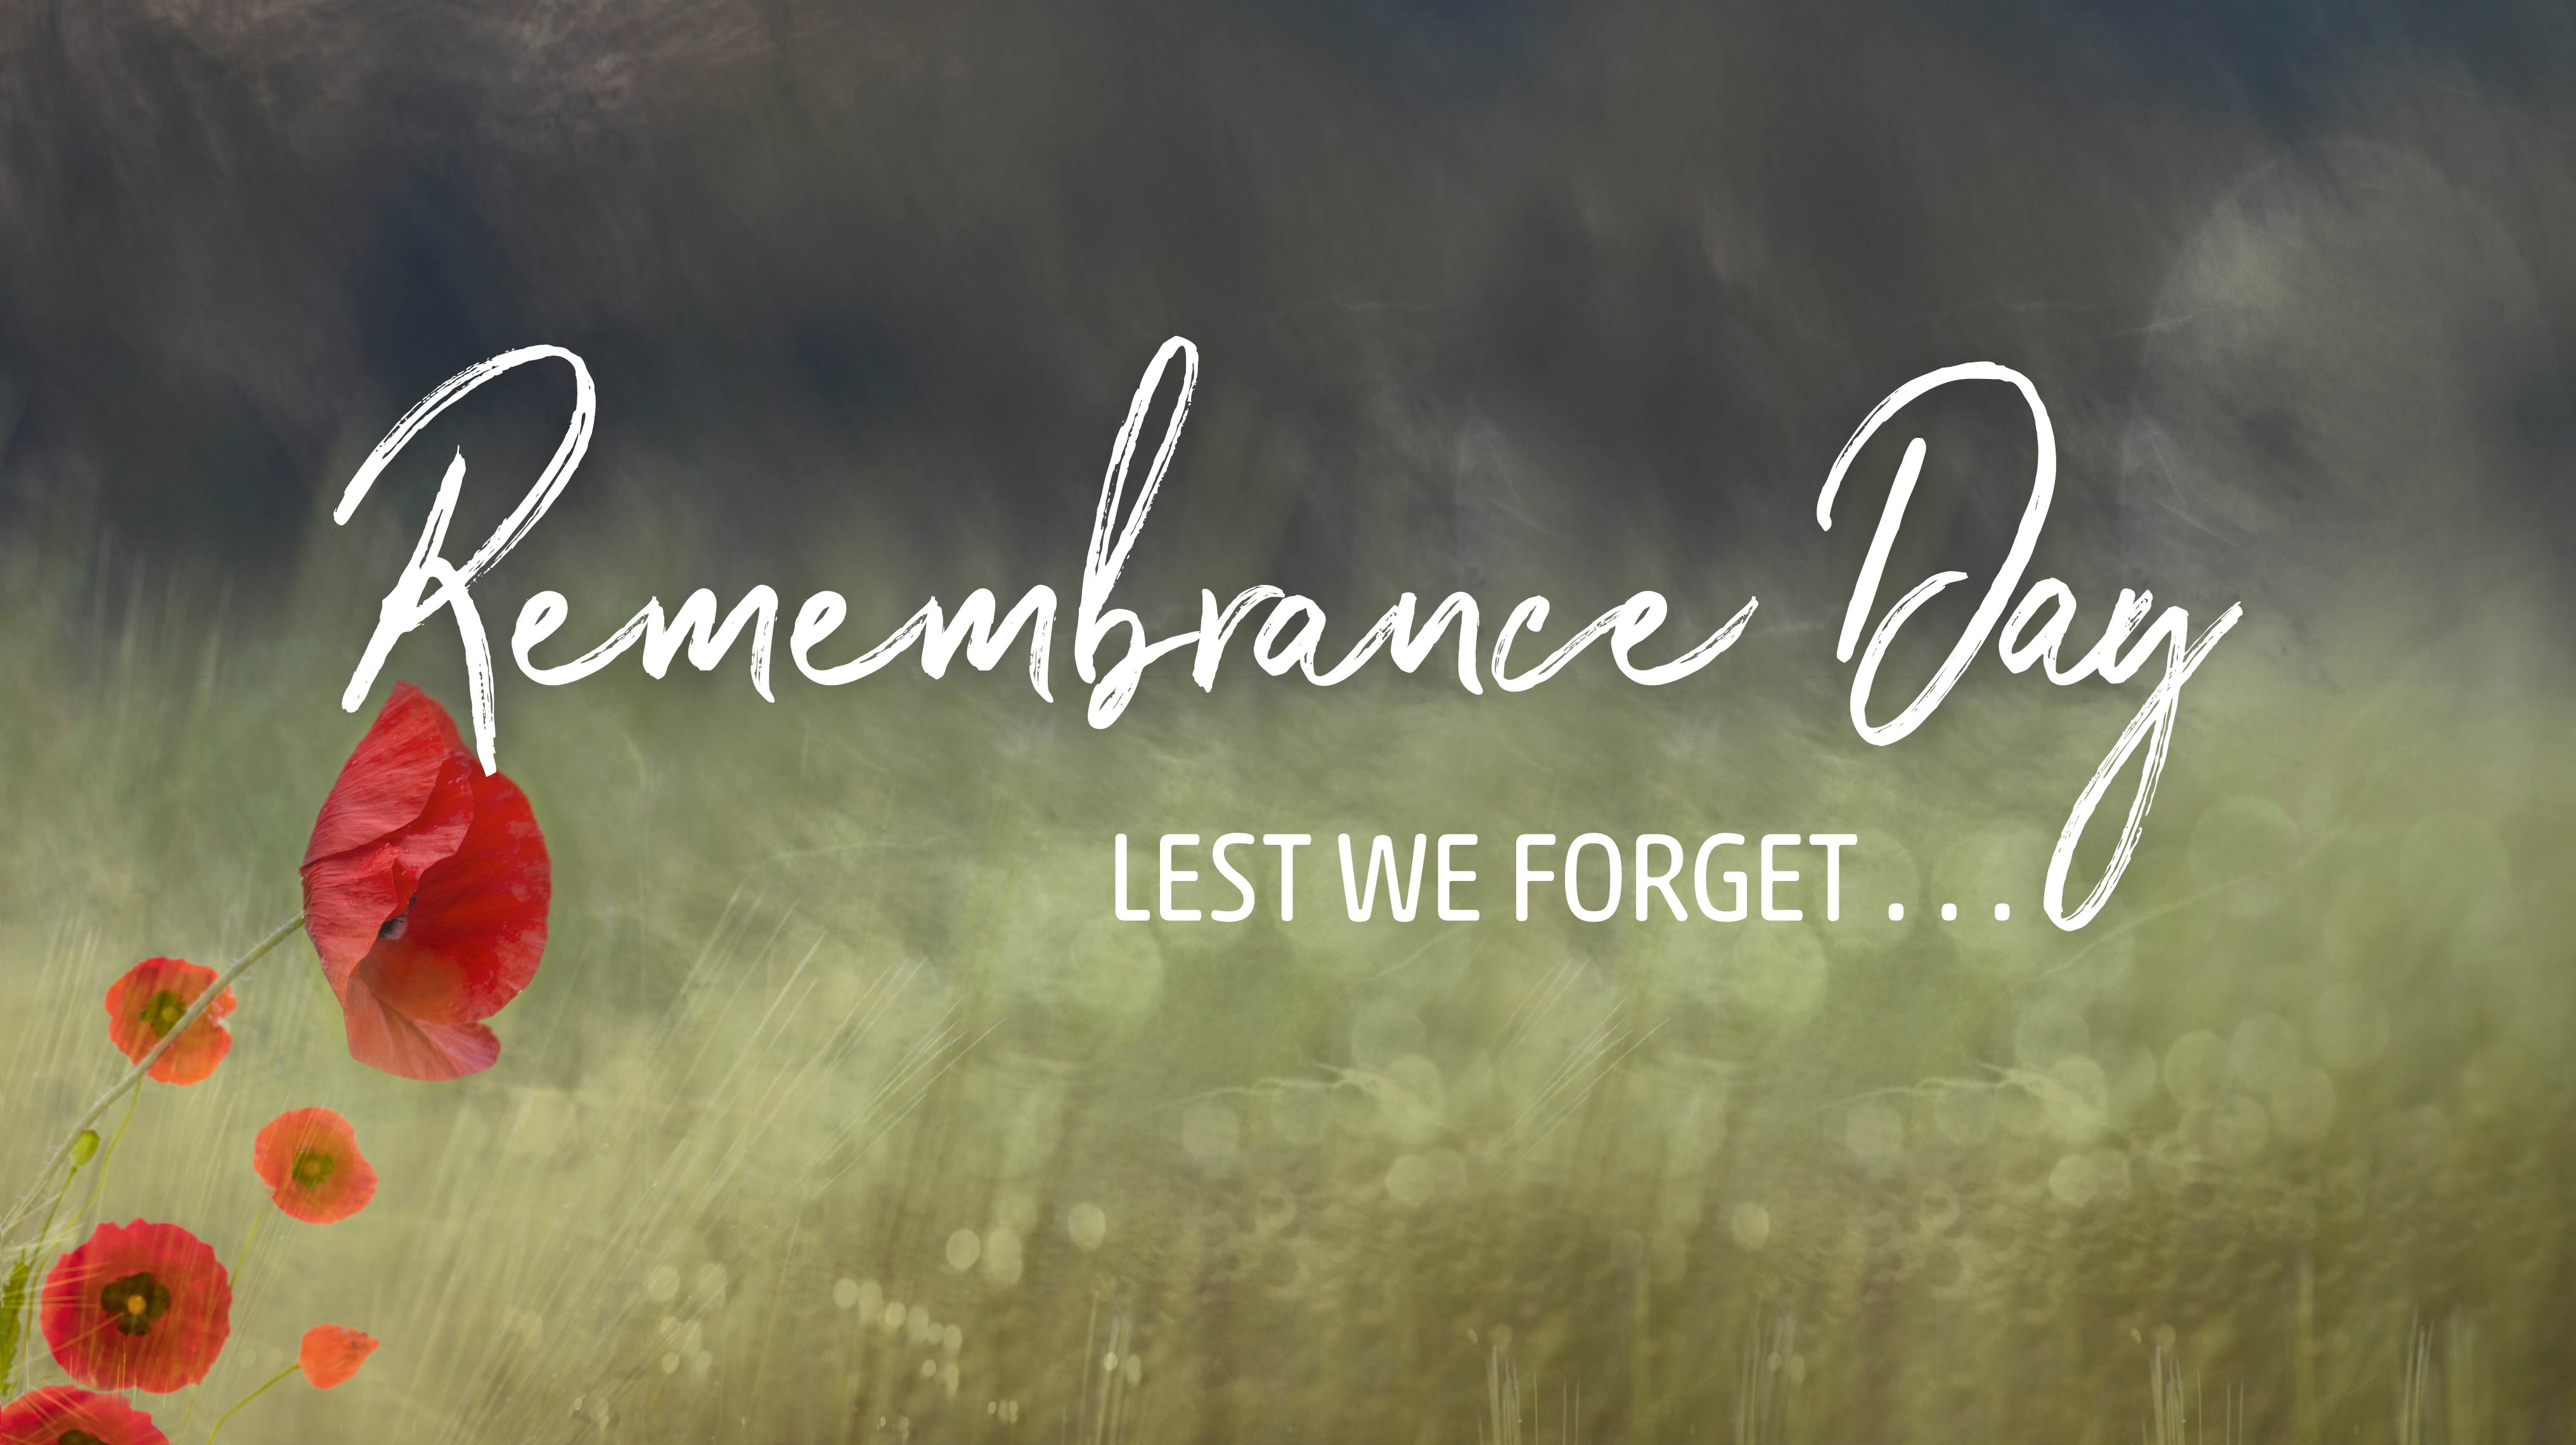 Remembrance Day-Lest We Forget